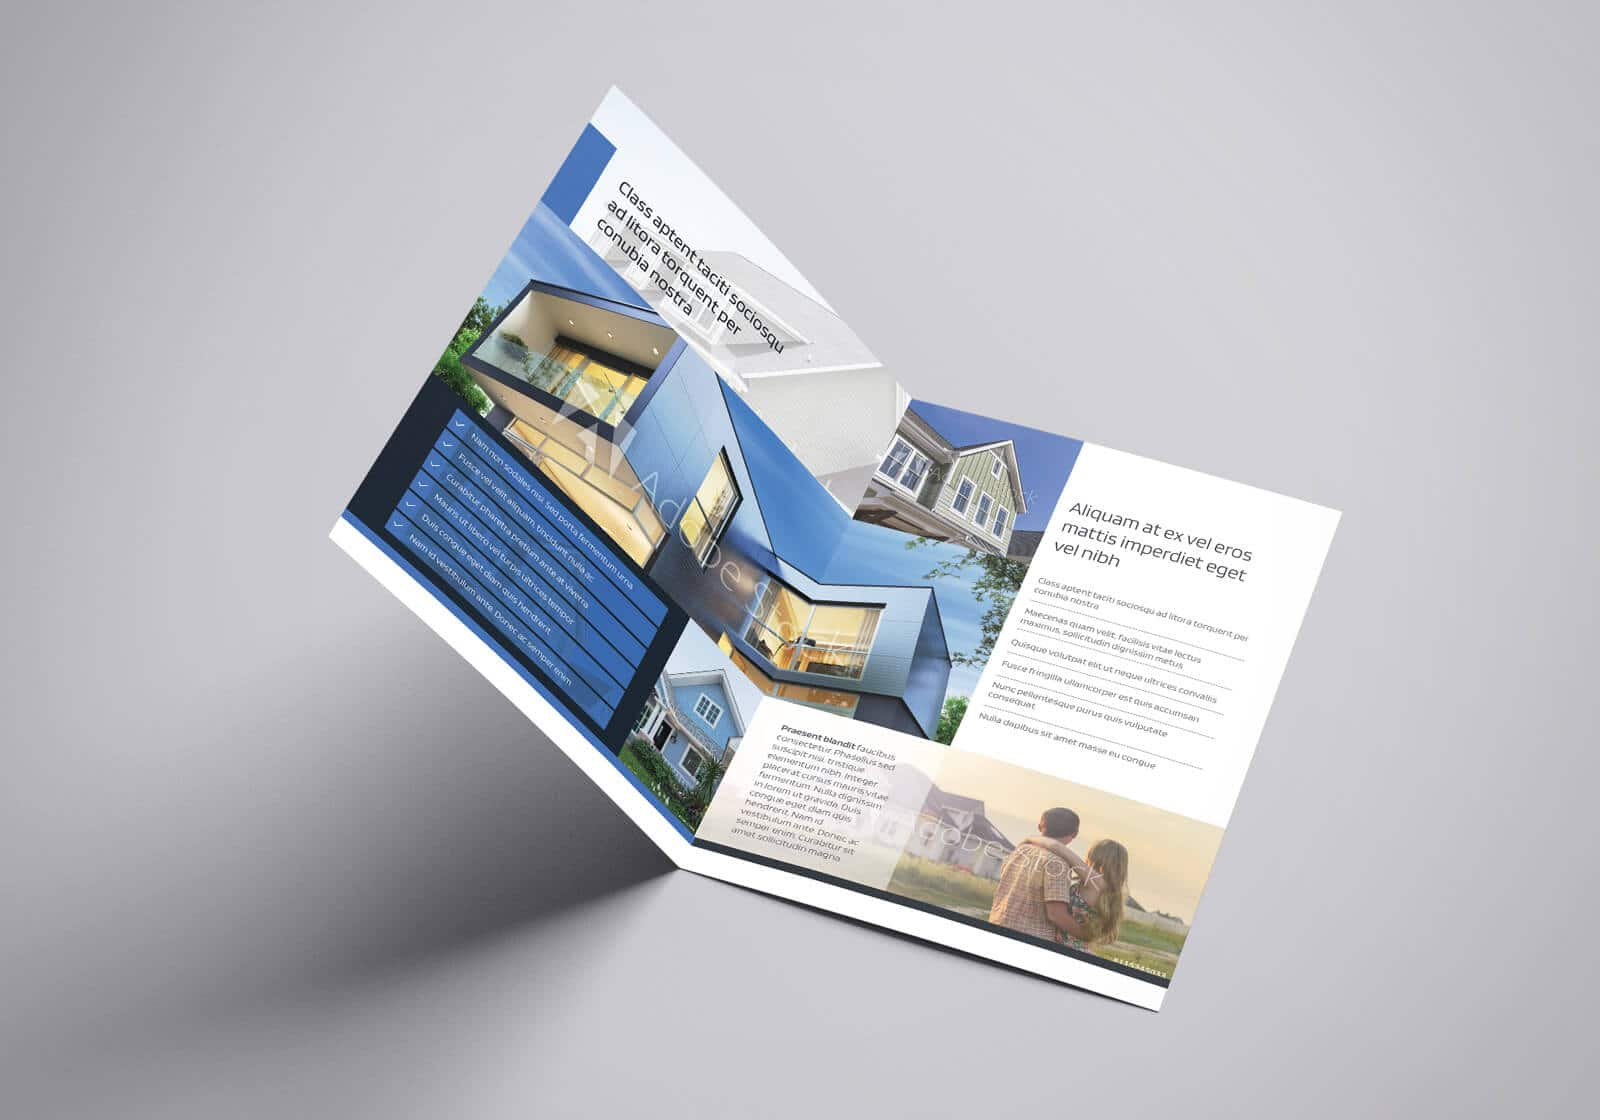 Residential Real Estate Half Fold Brochure Template 02 1